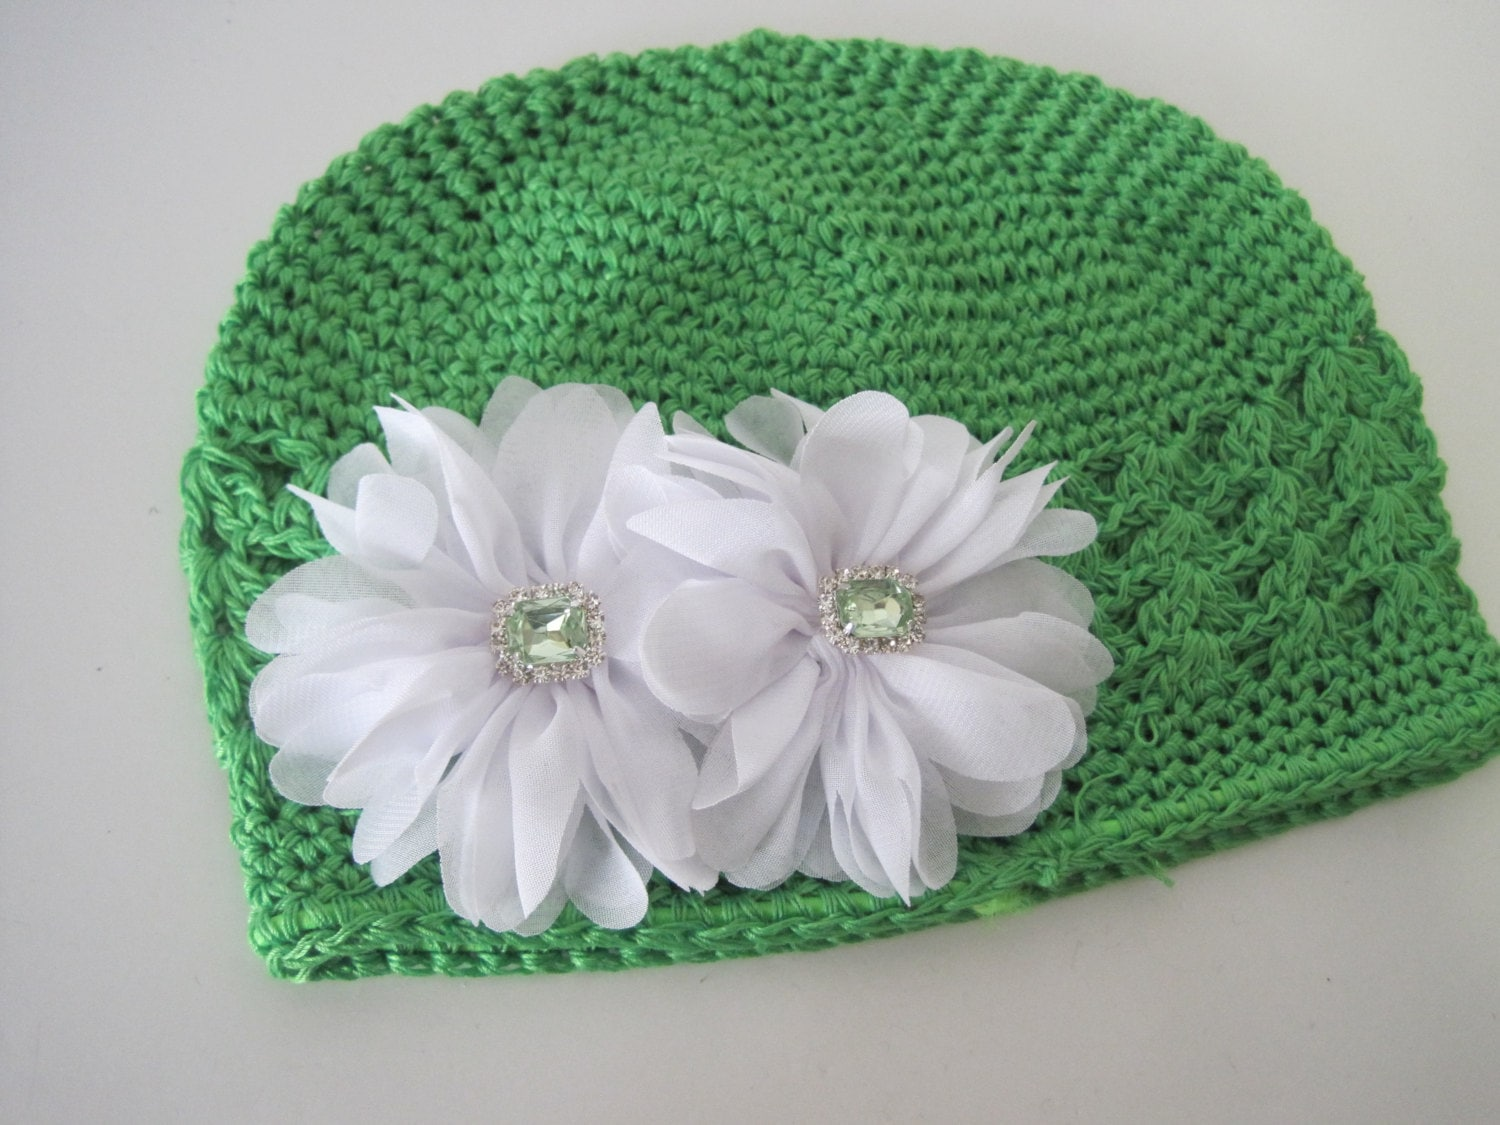 Kufi Beanie Hat Crochet Pattern : Baby Hat Green Crochet Kufi Beanie with White Chiffon Flowers